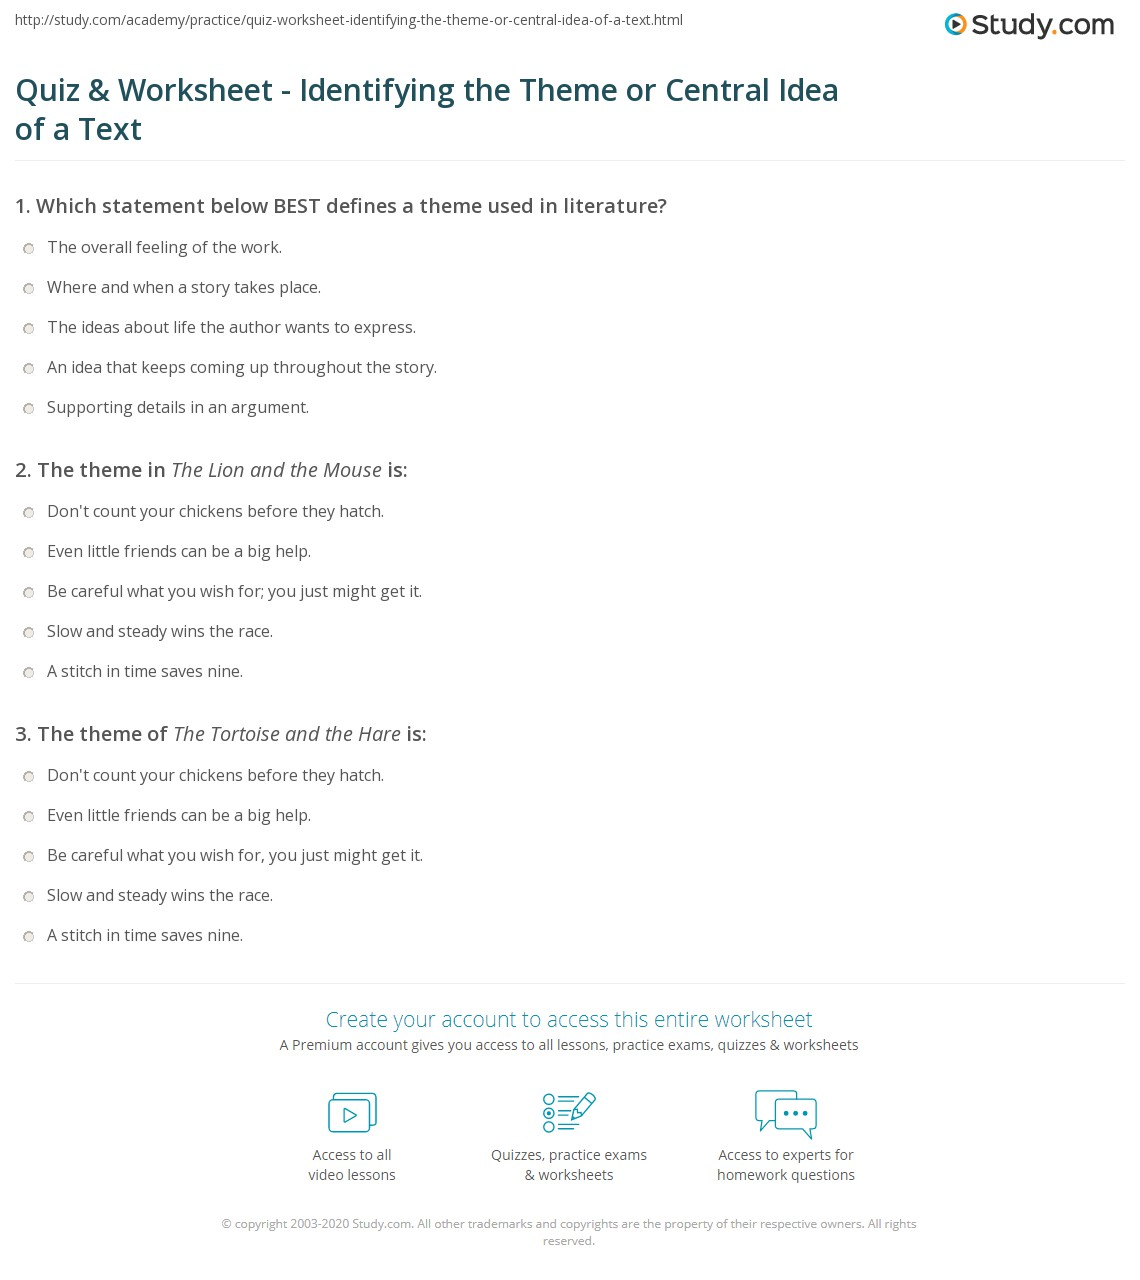 Quiz & Worksheet - Identifying the Theme or Central Idea of a Text ...